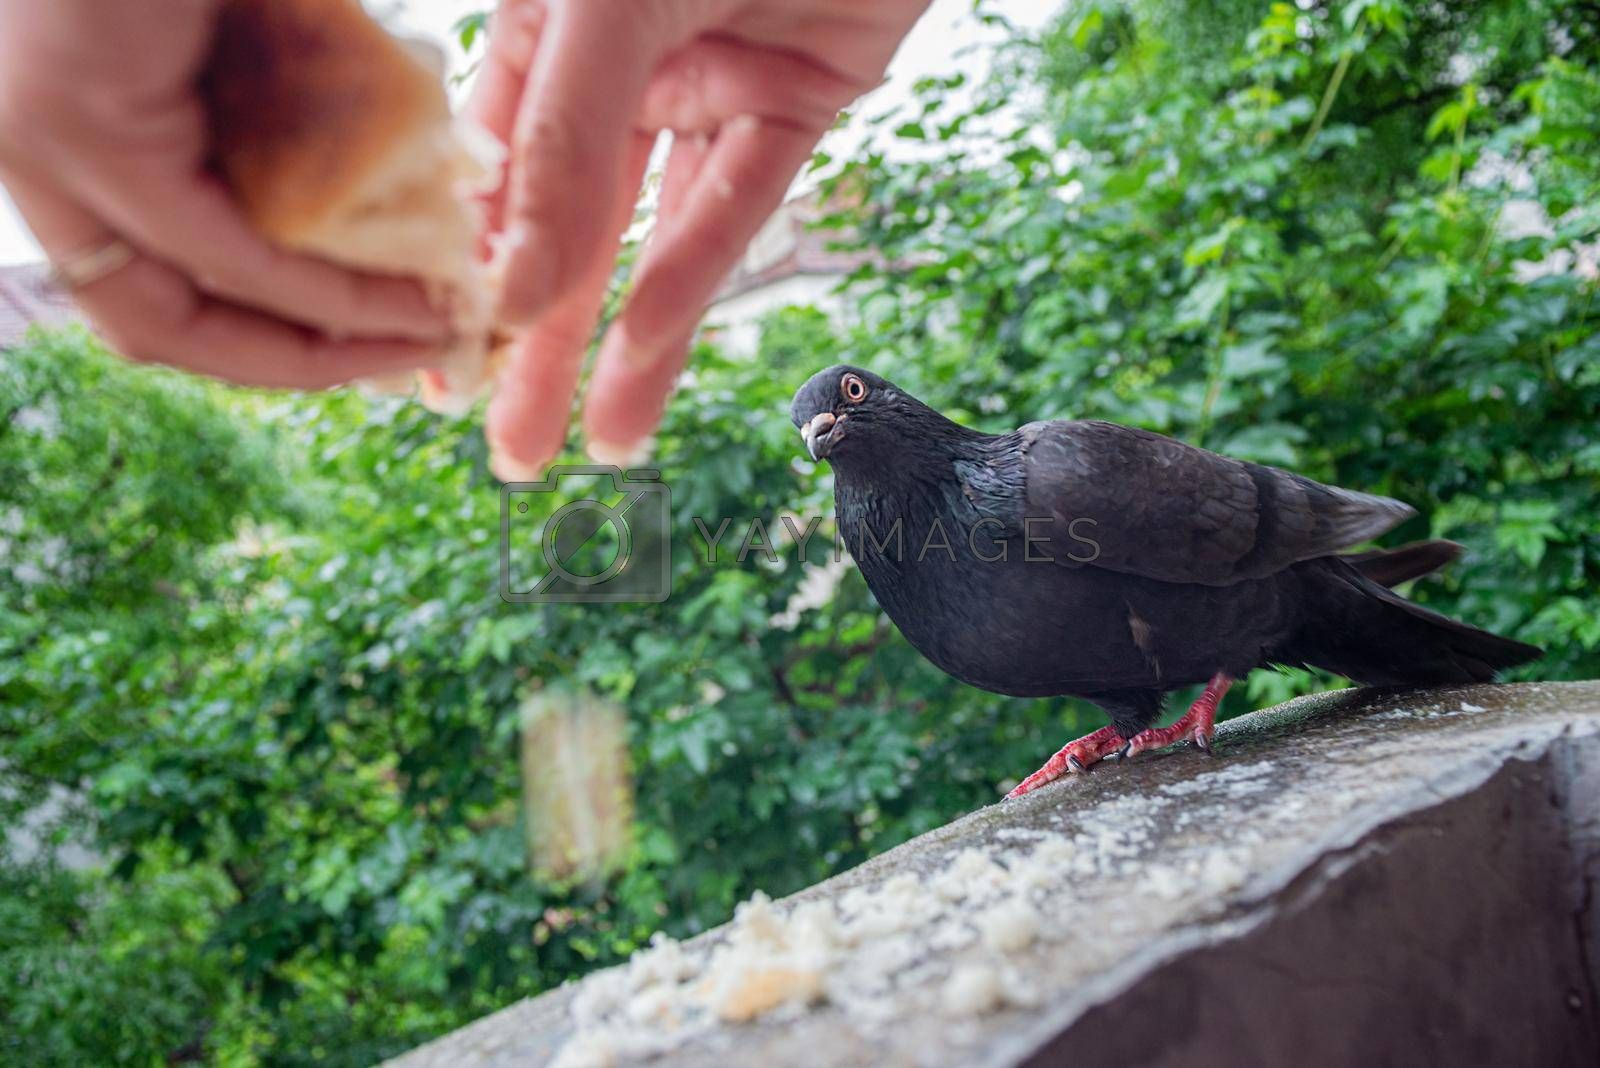 Royalty free image of Female Hands Are Feeding Pigeon On Balcony by vilevi